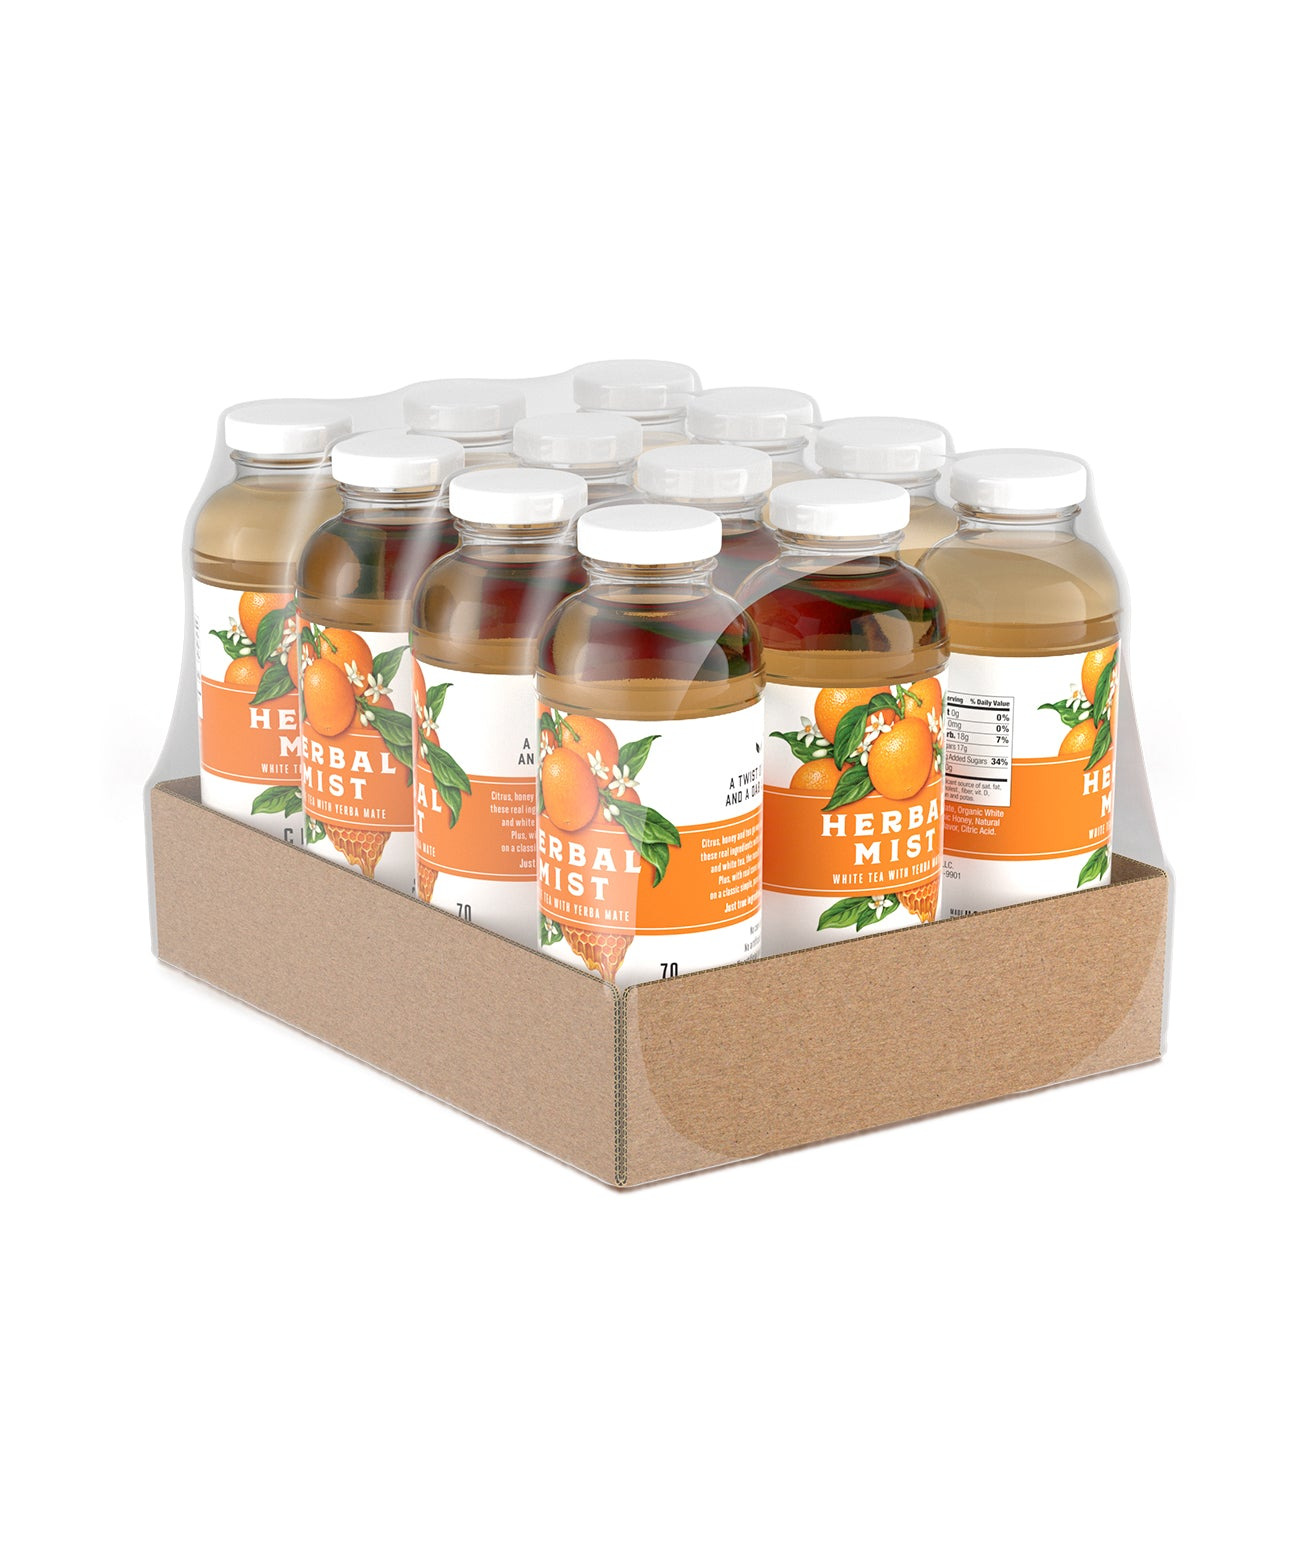 Citrus Honey White Tea & Yerba Mate (12-Pack)